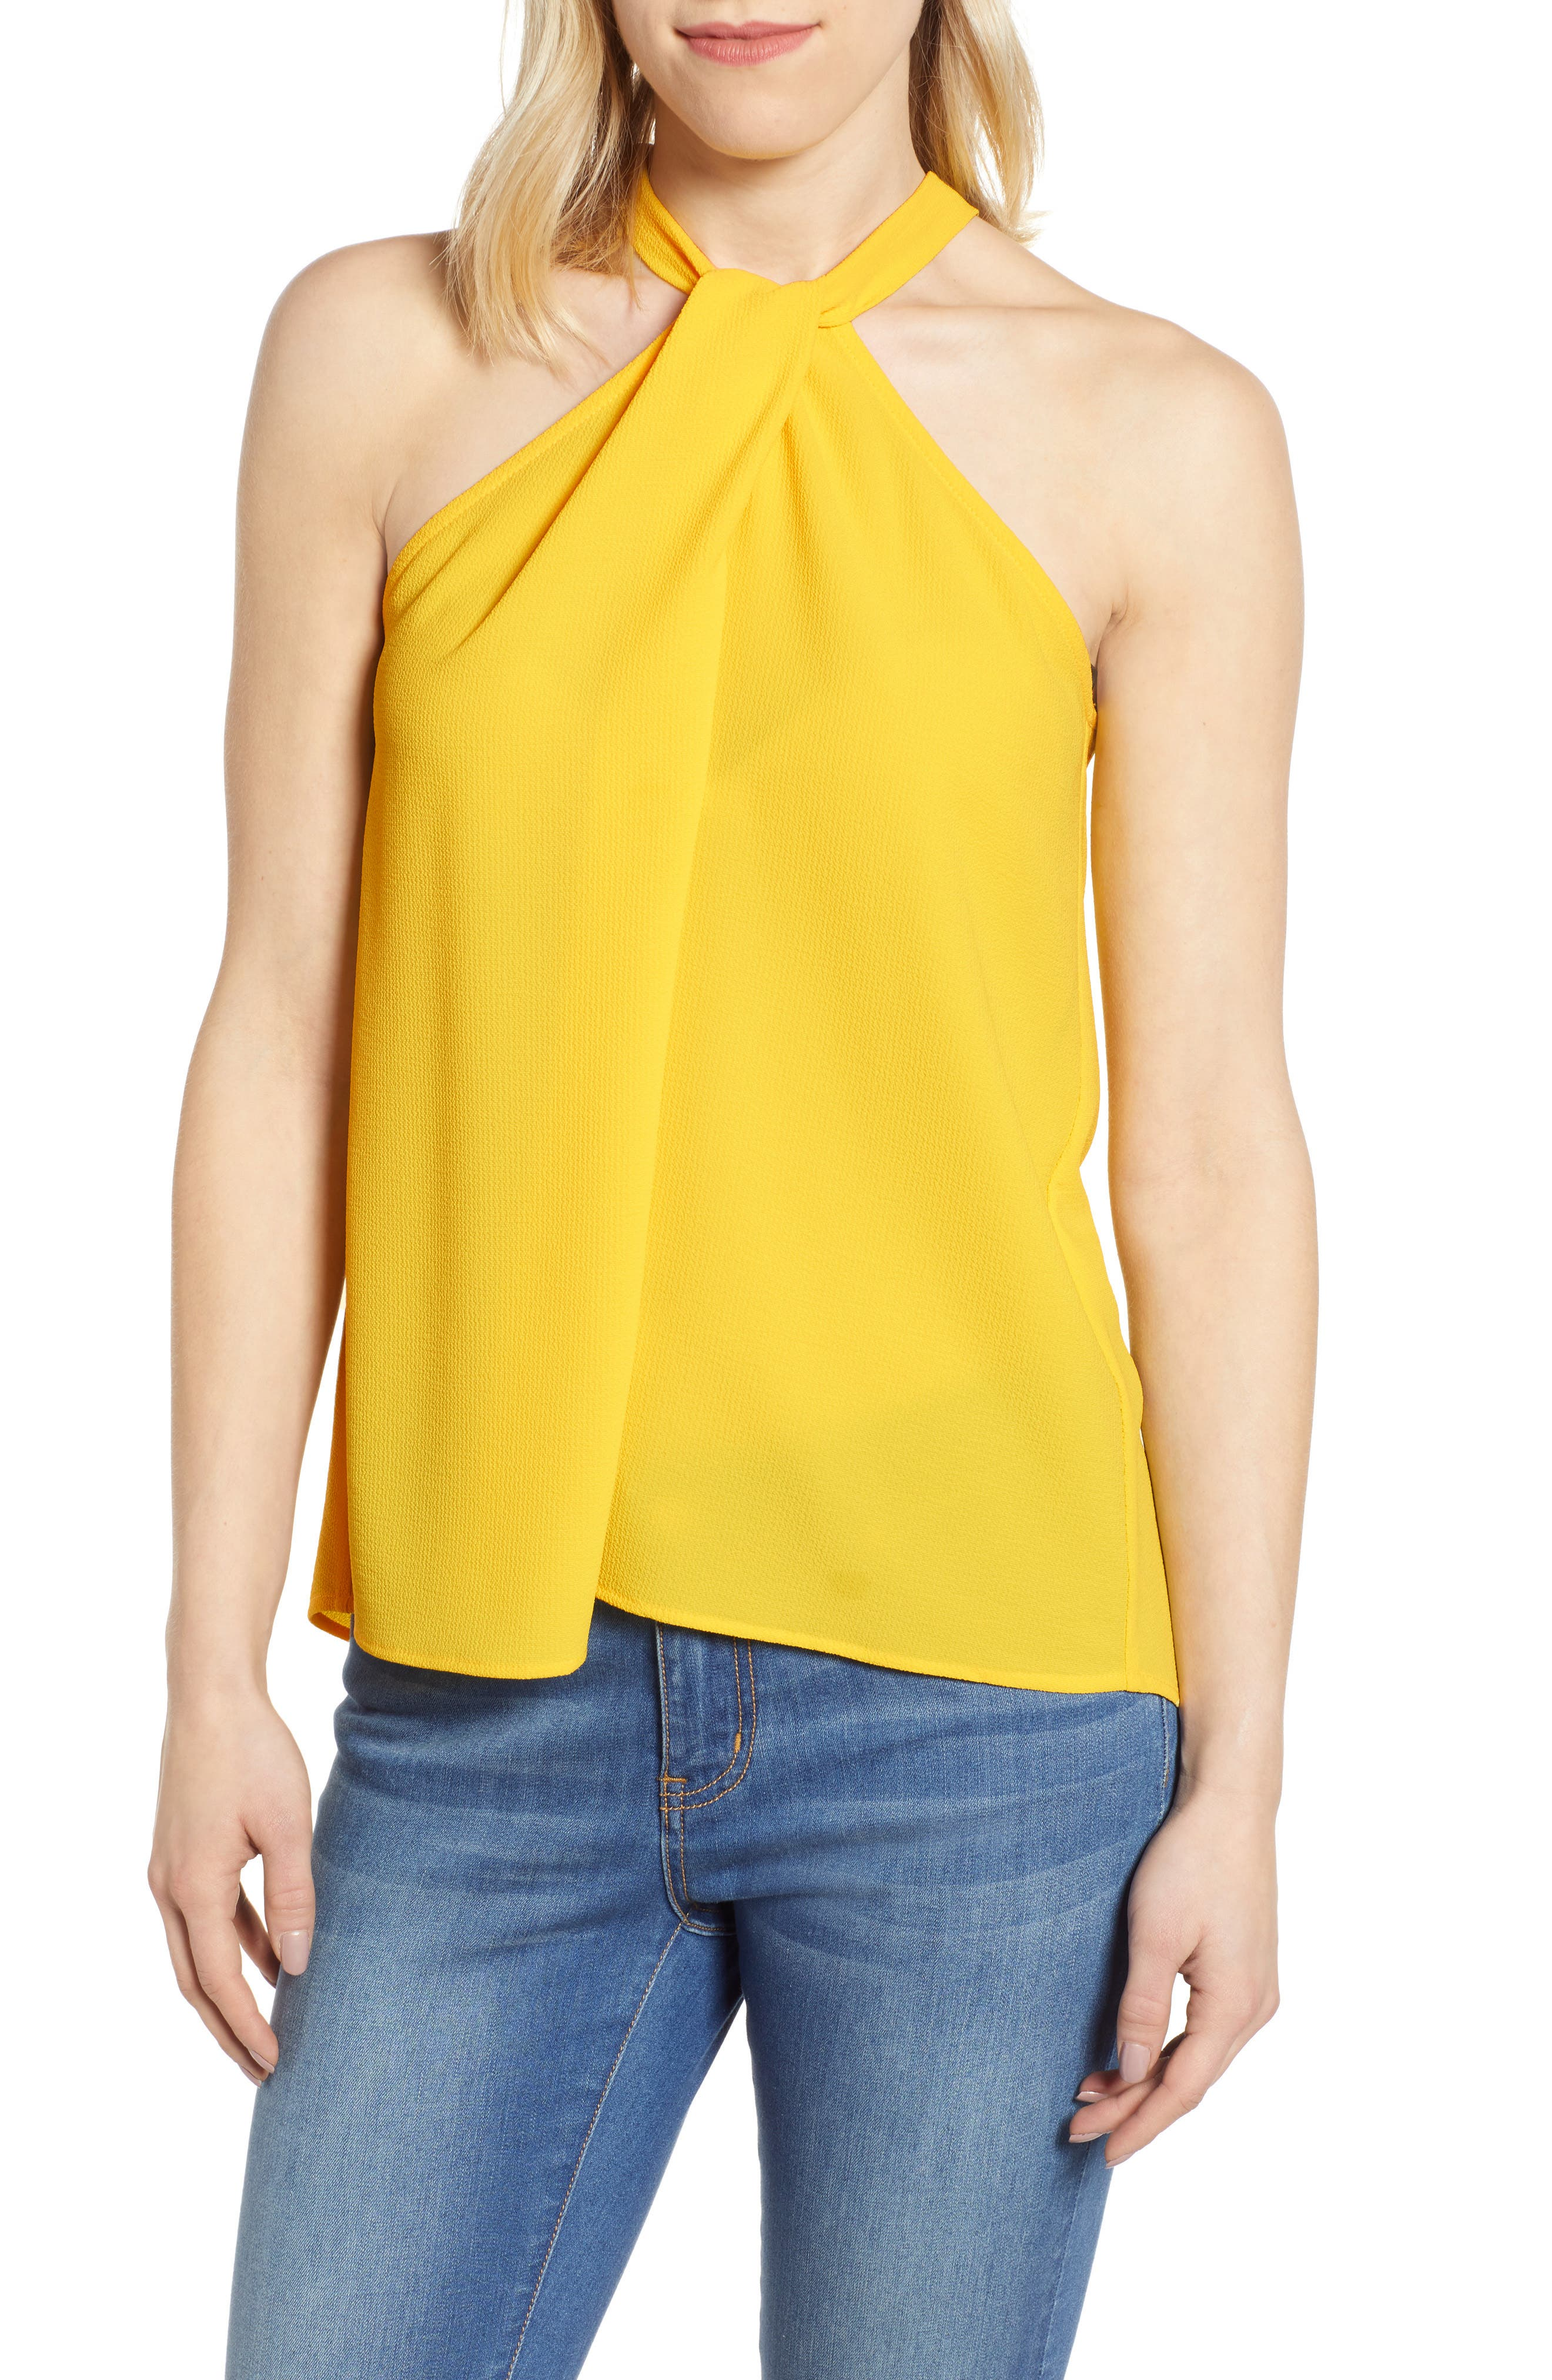 GIBSON x International Women's Day Chelsea Halter Neck Date Top, Main, color, YELLOW